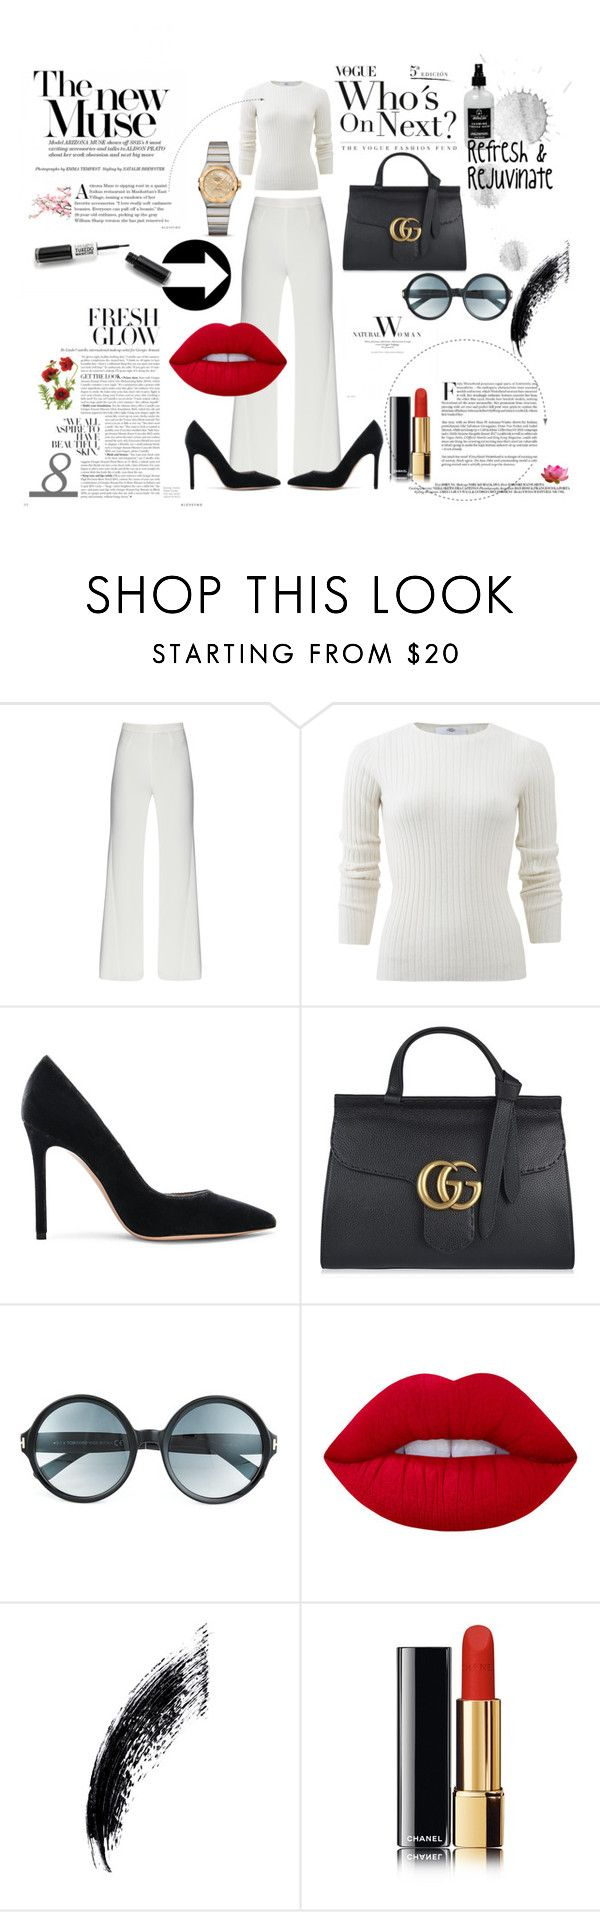 """Autumn Feels"" by brownsfamilyjewellers on Polyvore featuring Allude, Gianvito Rossi, Gucci, Tom Ford, Lime Crime, Little Barn Apothecary, Pink Lotus, LIPSTICK, Chanel and autumn"